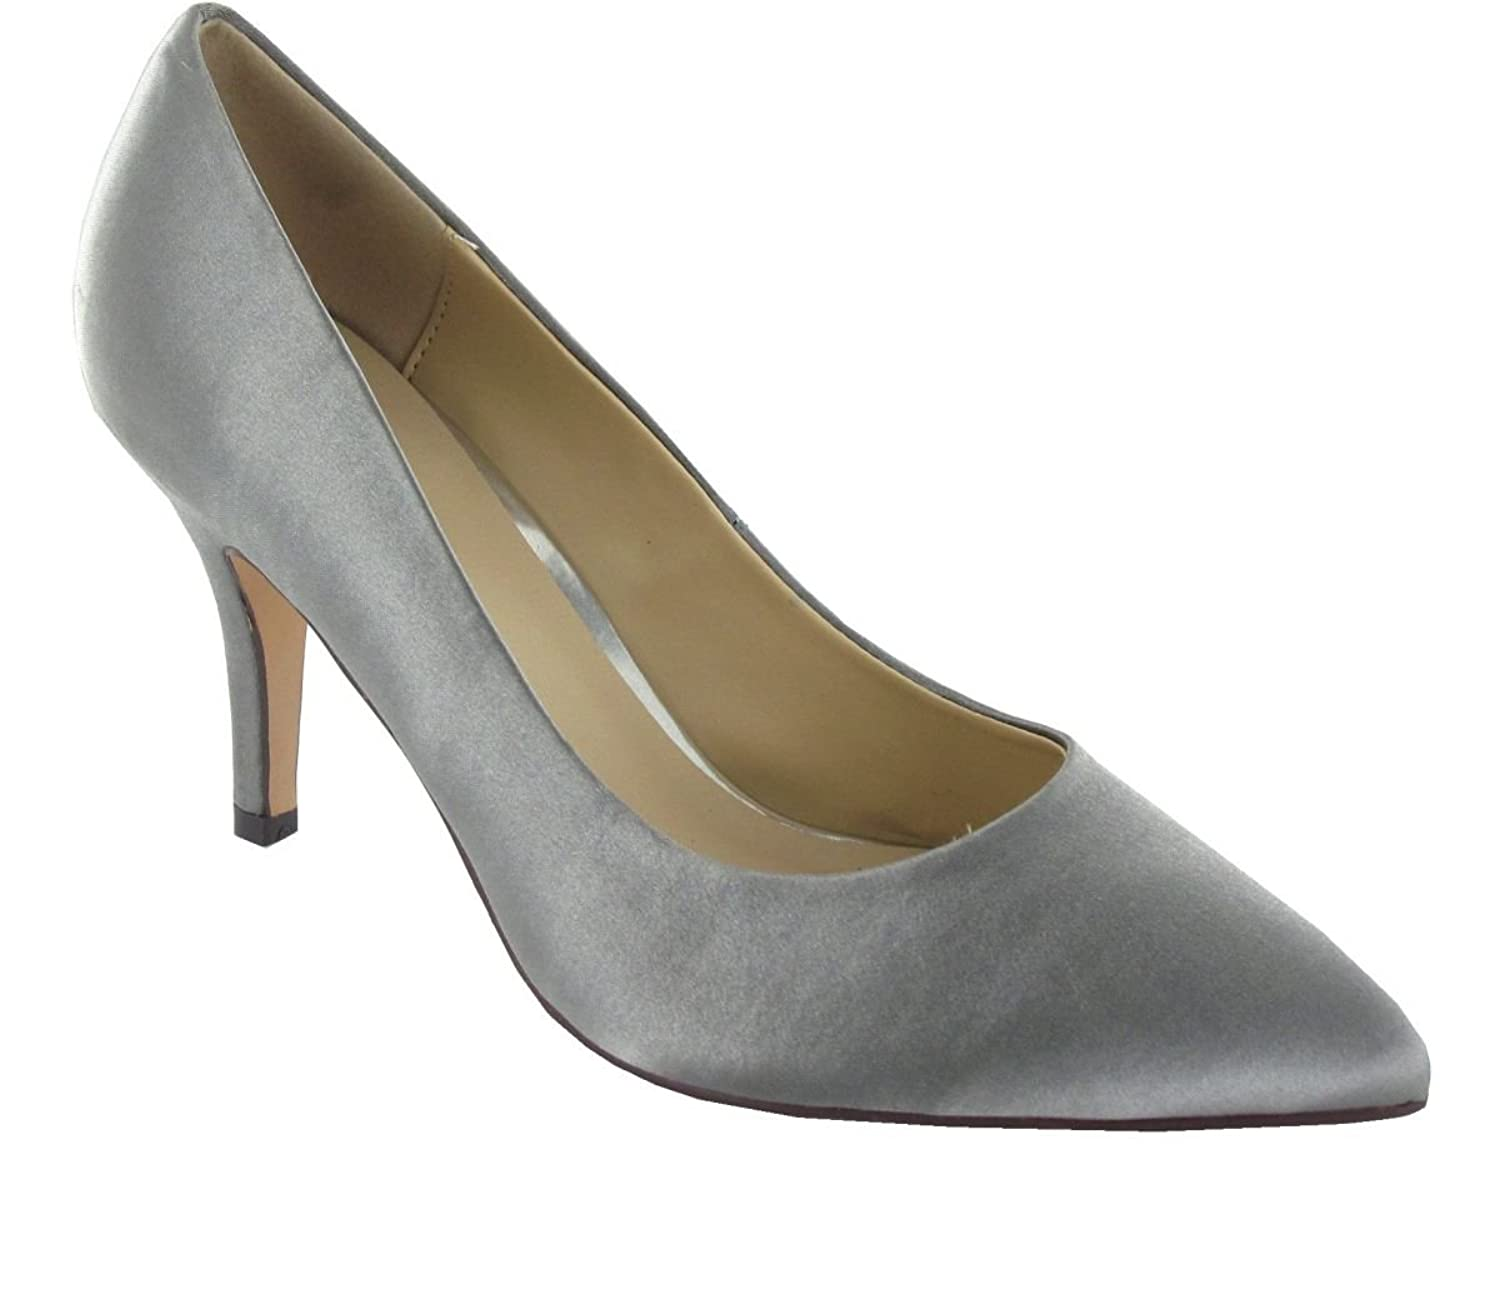 Menbur Womens Domingo Pointed Toe Classic Pumps Grey Size 7.0